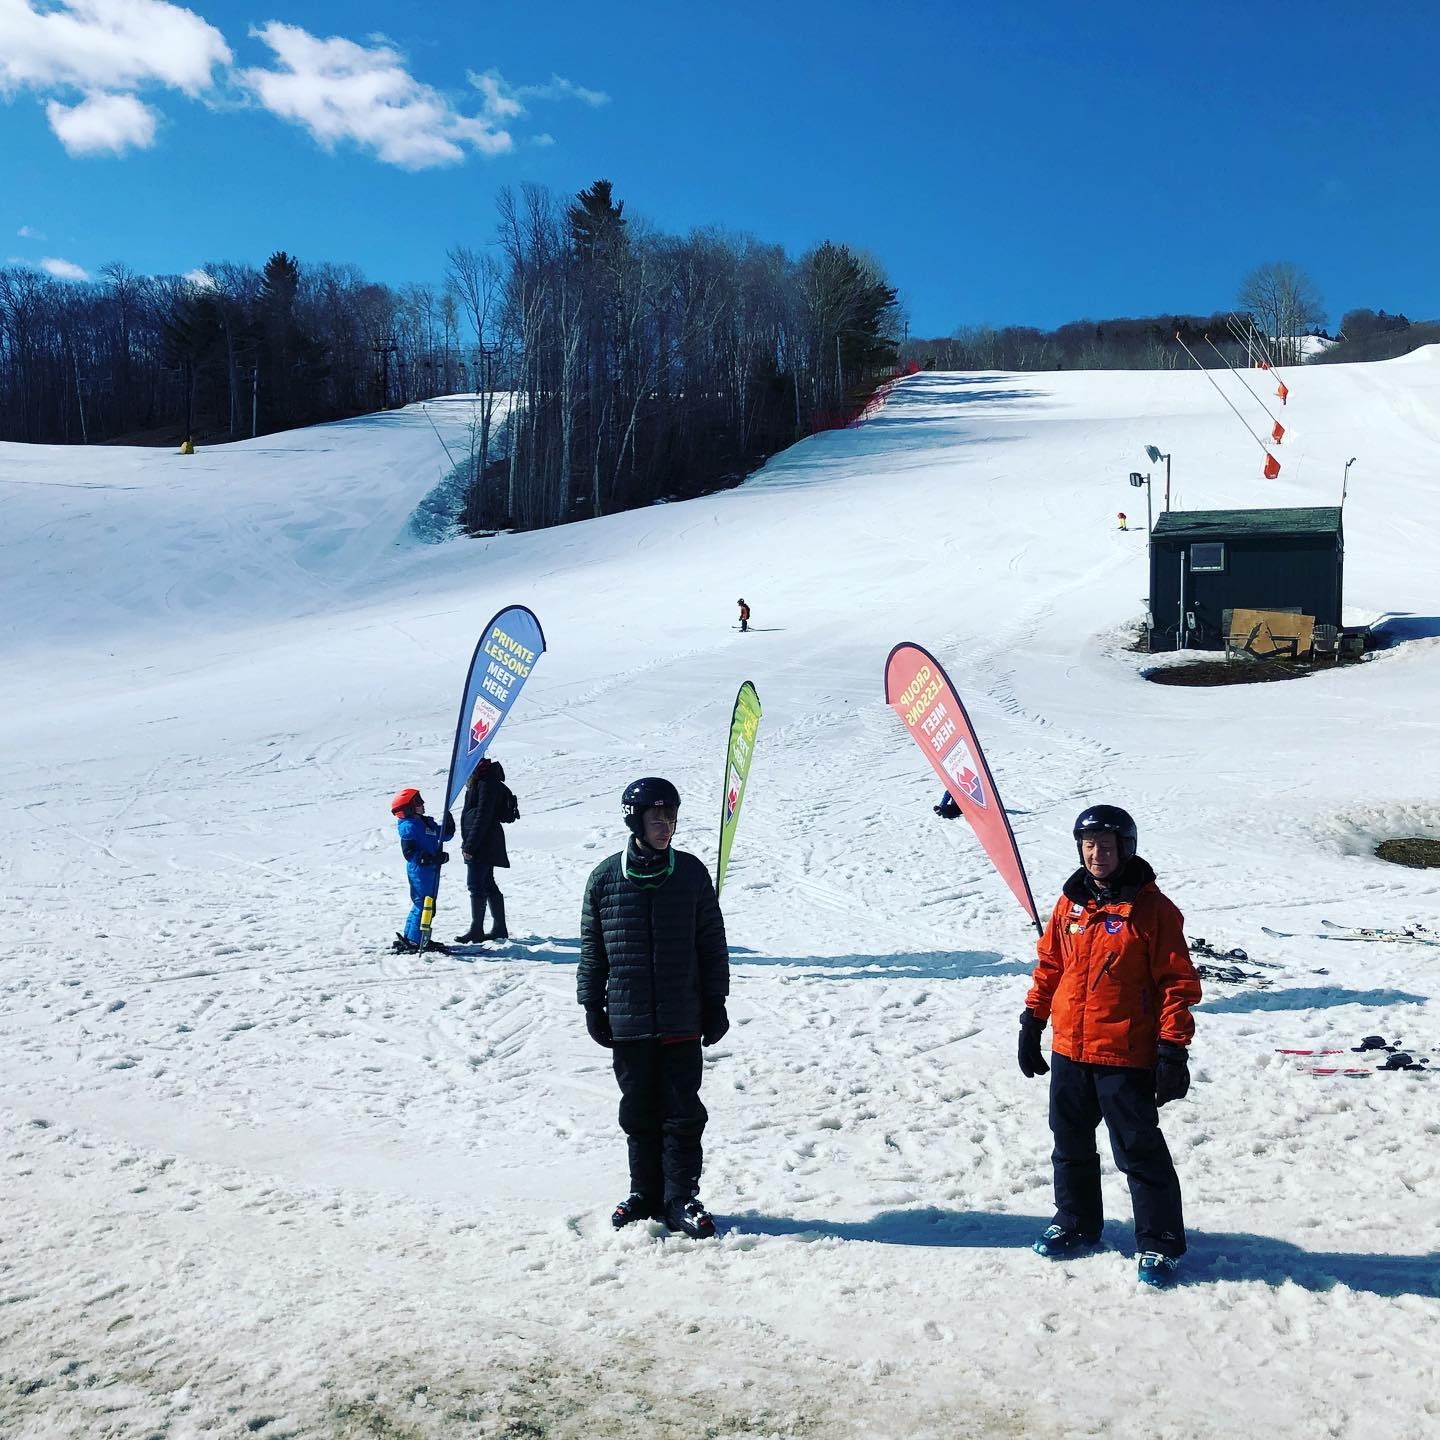 Image of visitors at the bottom of the slopes at Camden Snow Bowl Ski Resort in Maine